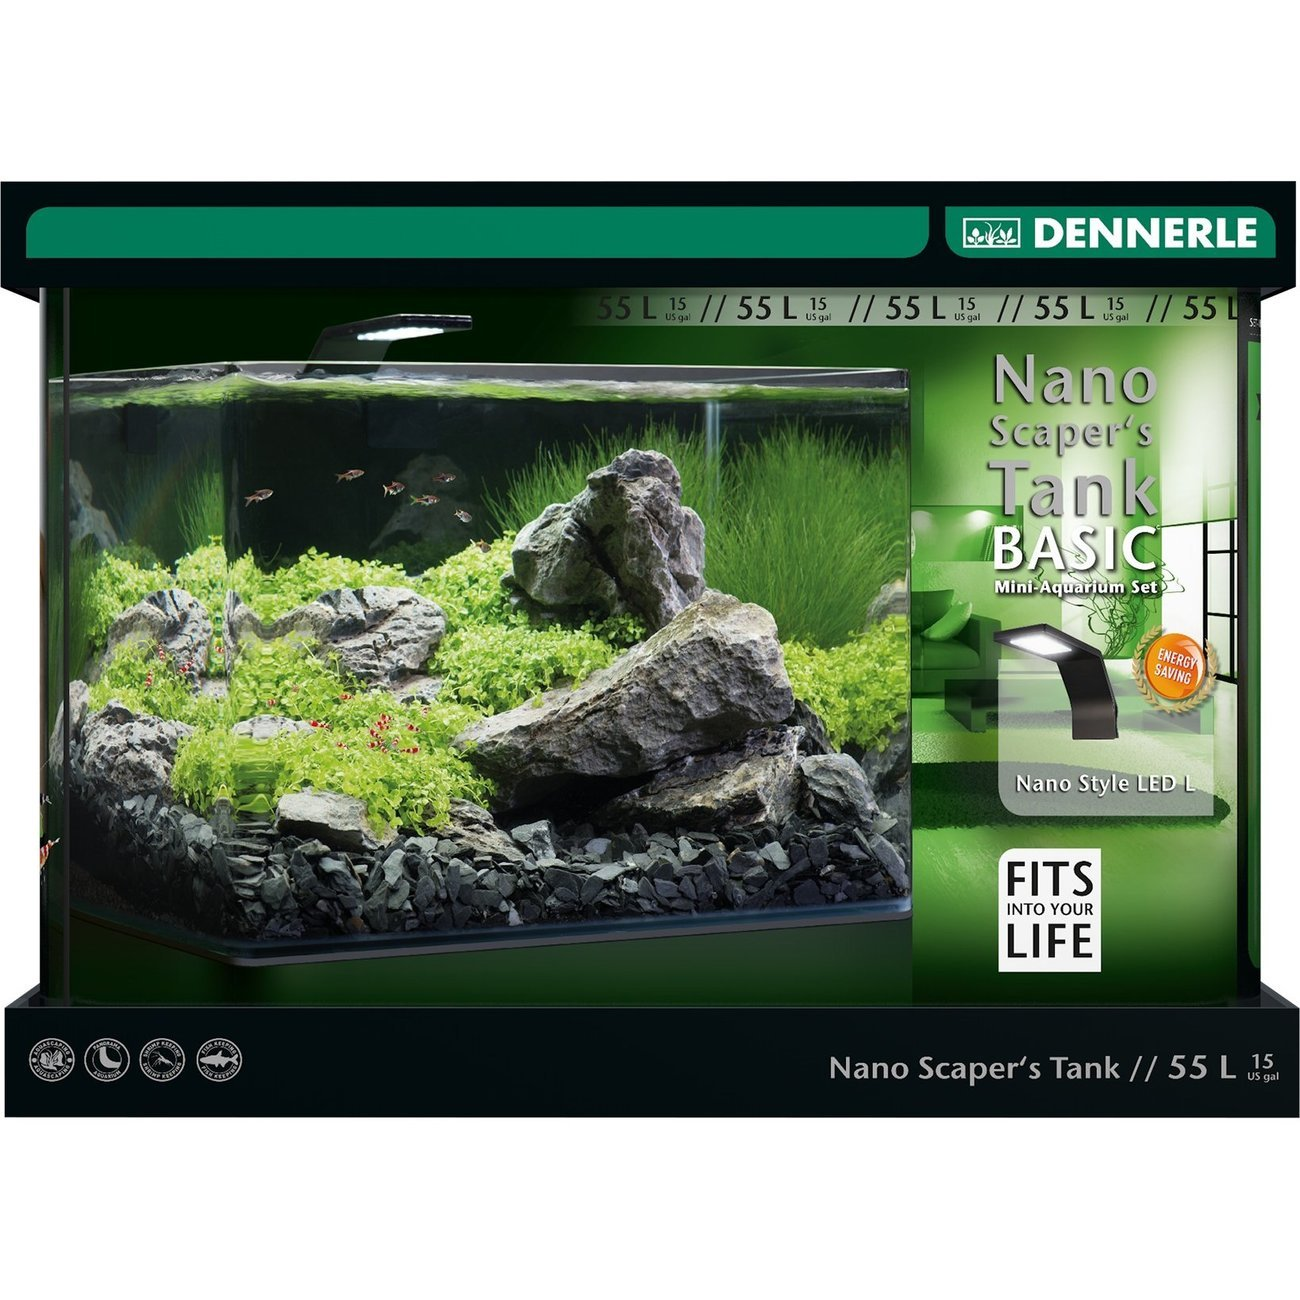 Dennerle Nano Scapers Tank Basic Style LED Aquarium, 55 Liter